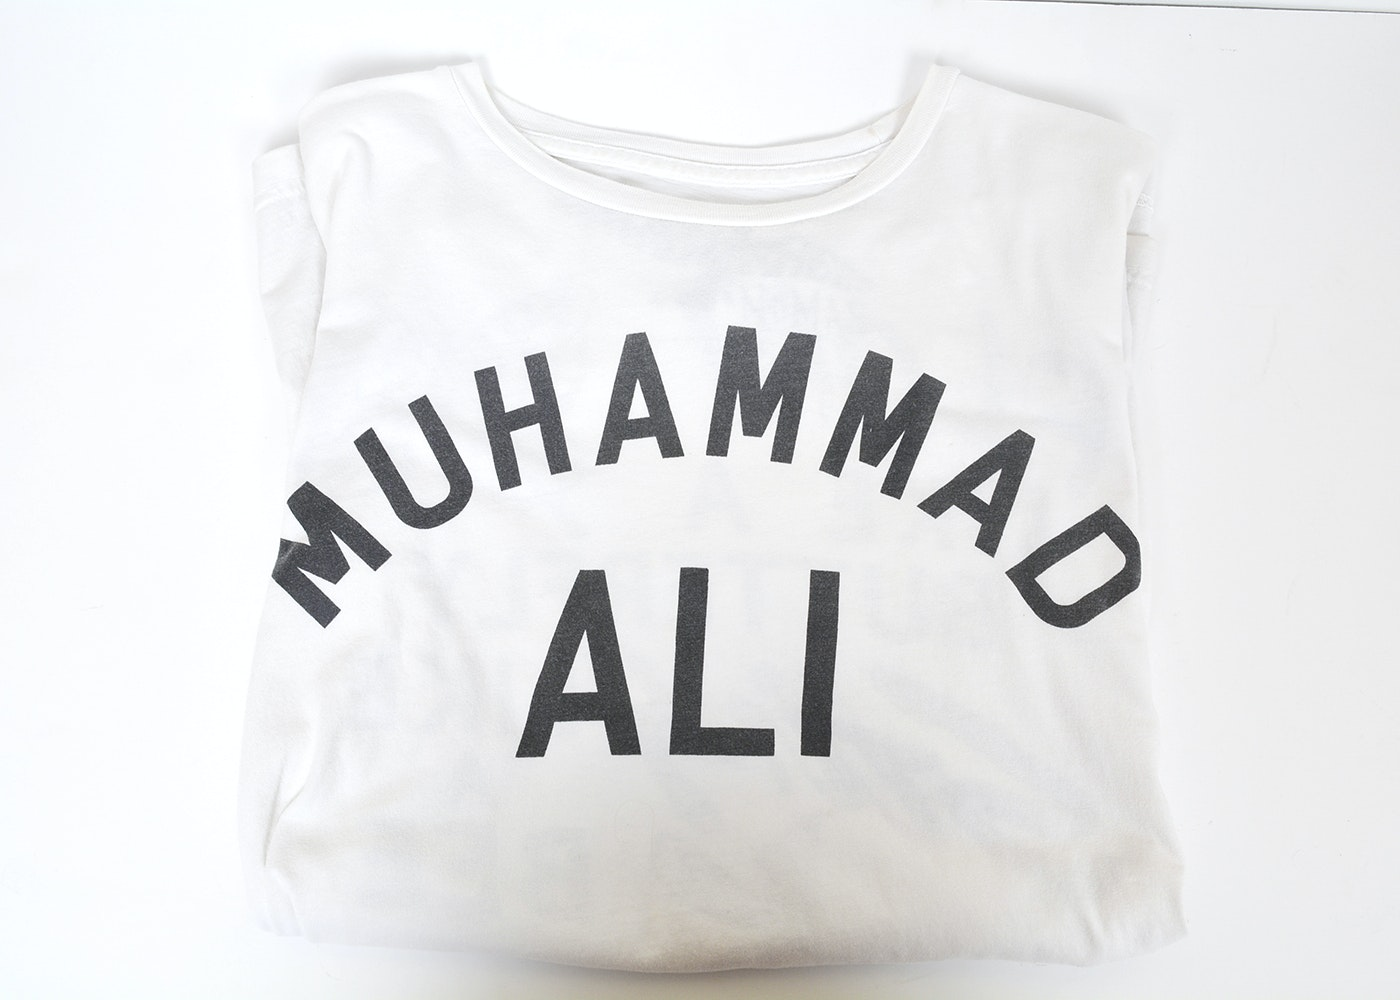 muhammad ali t shirt ebth. Black Bedroom Furniture Sets. Home Design Ideas